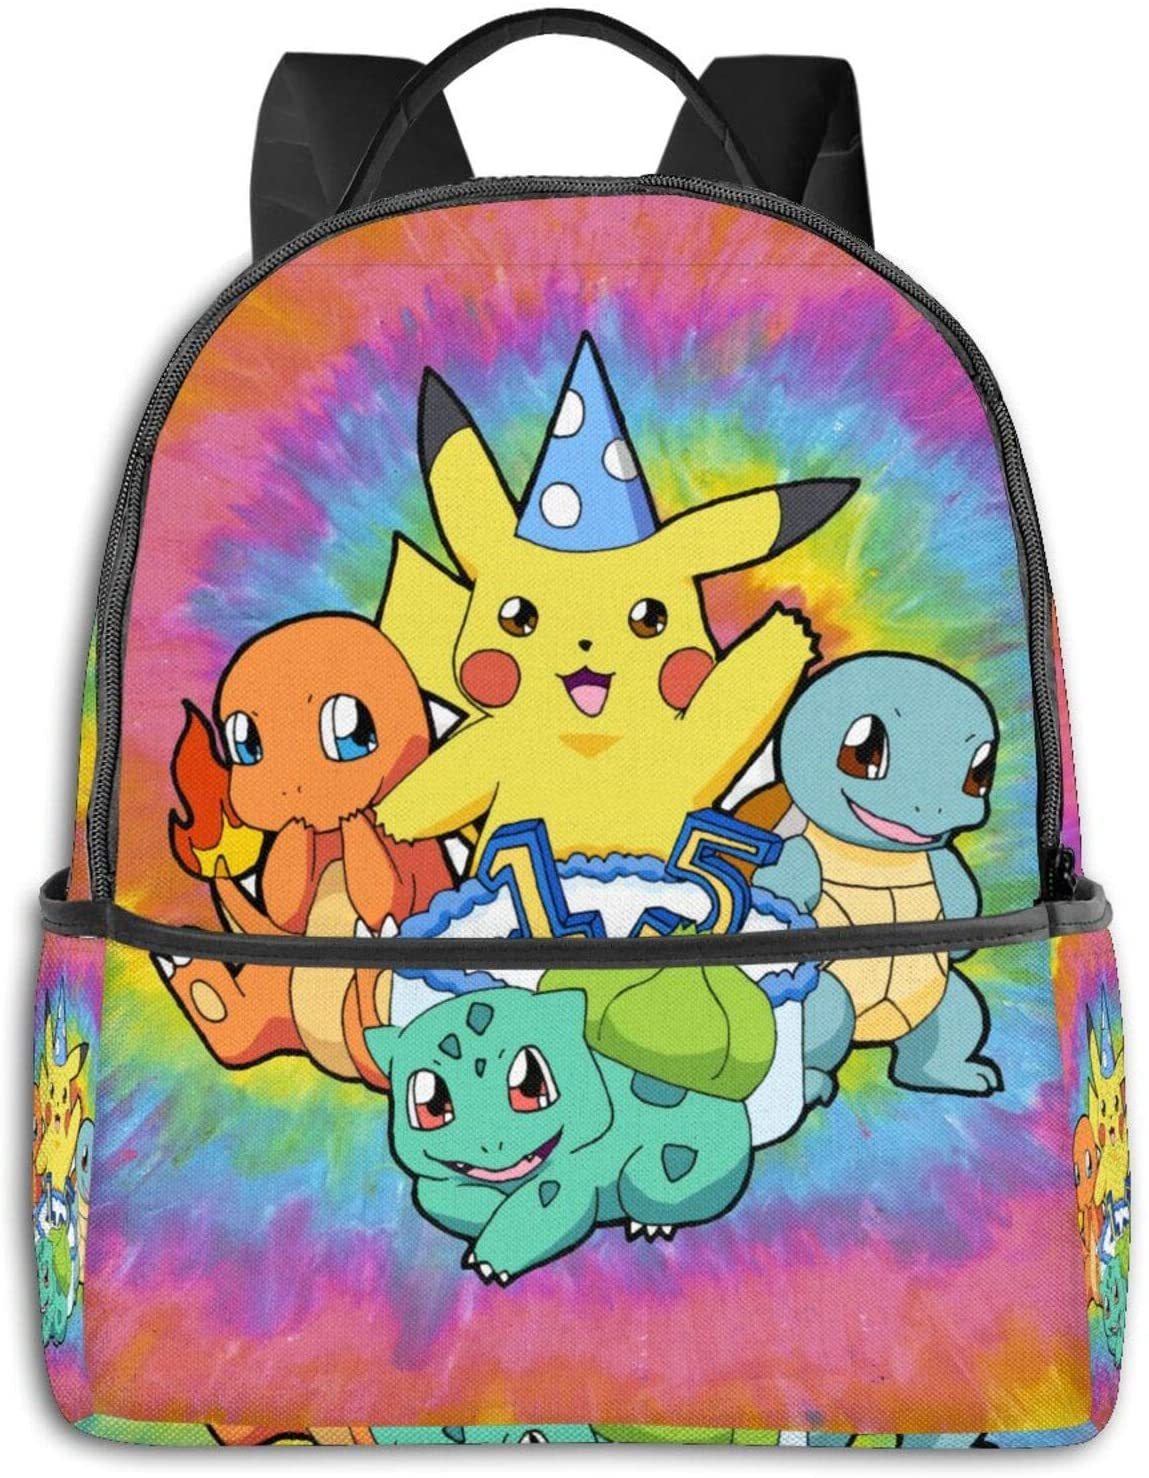 Pikachu Nylon Lining, Breathable Back Panel, Smooth Zipper.Best Gift.